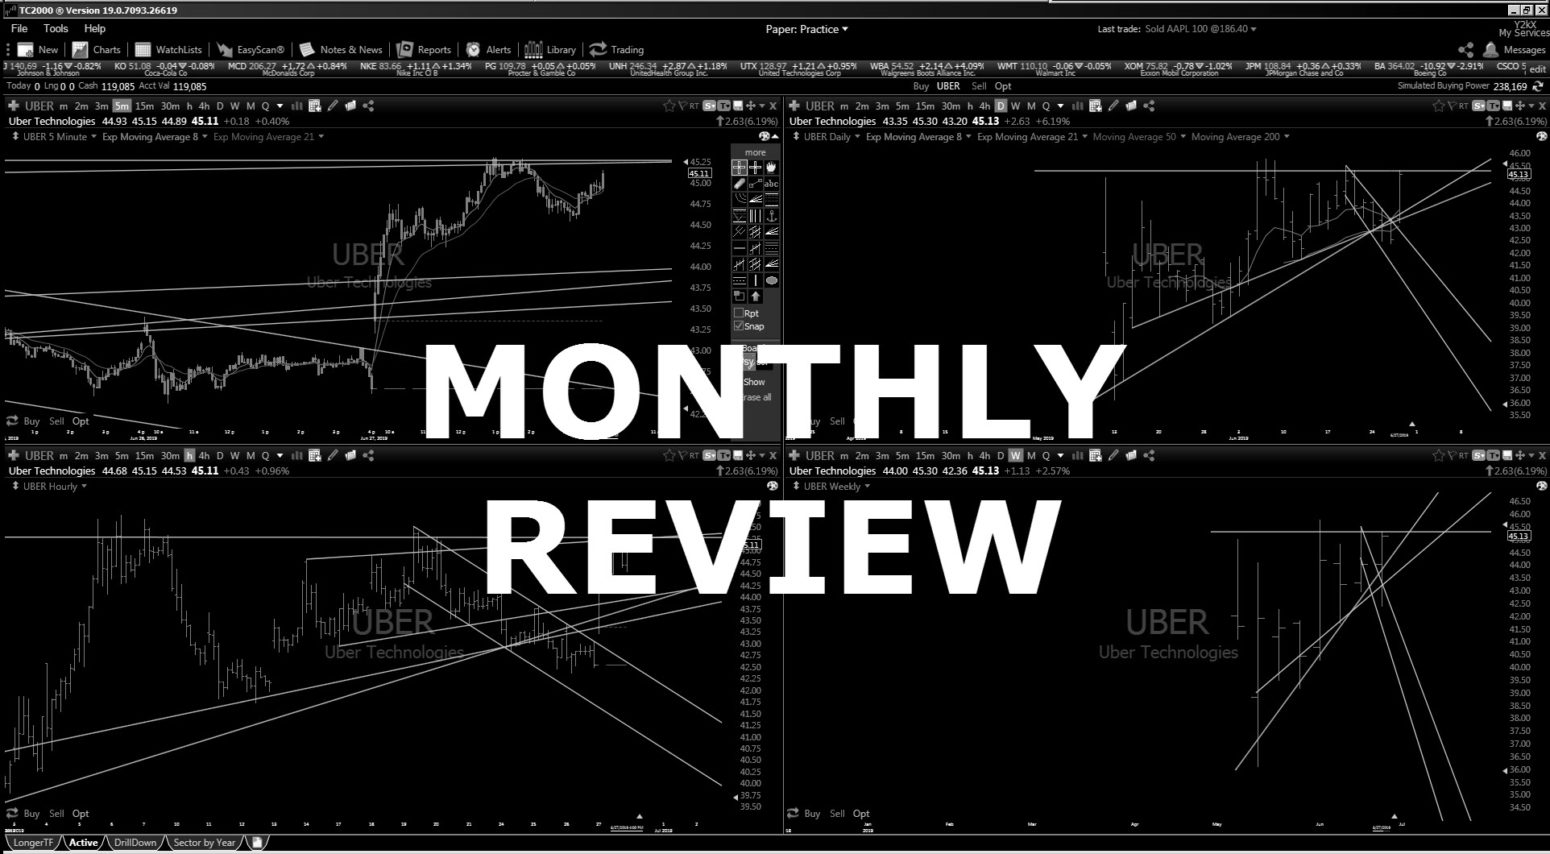 Playbook Trading monthly review